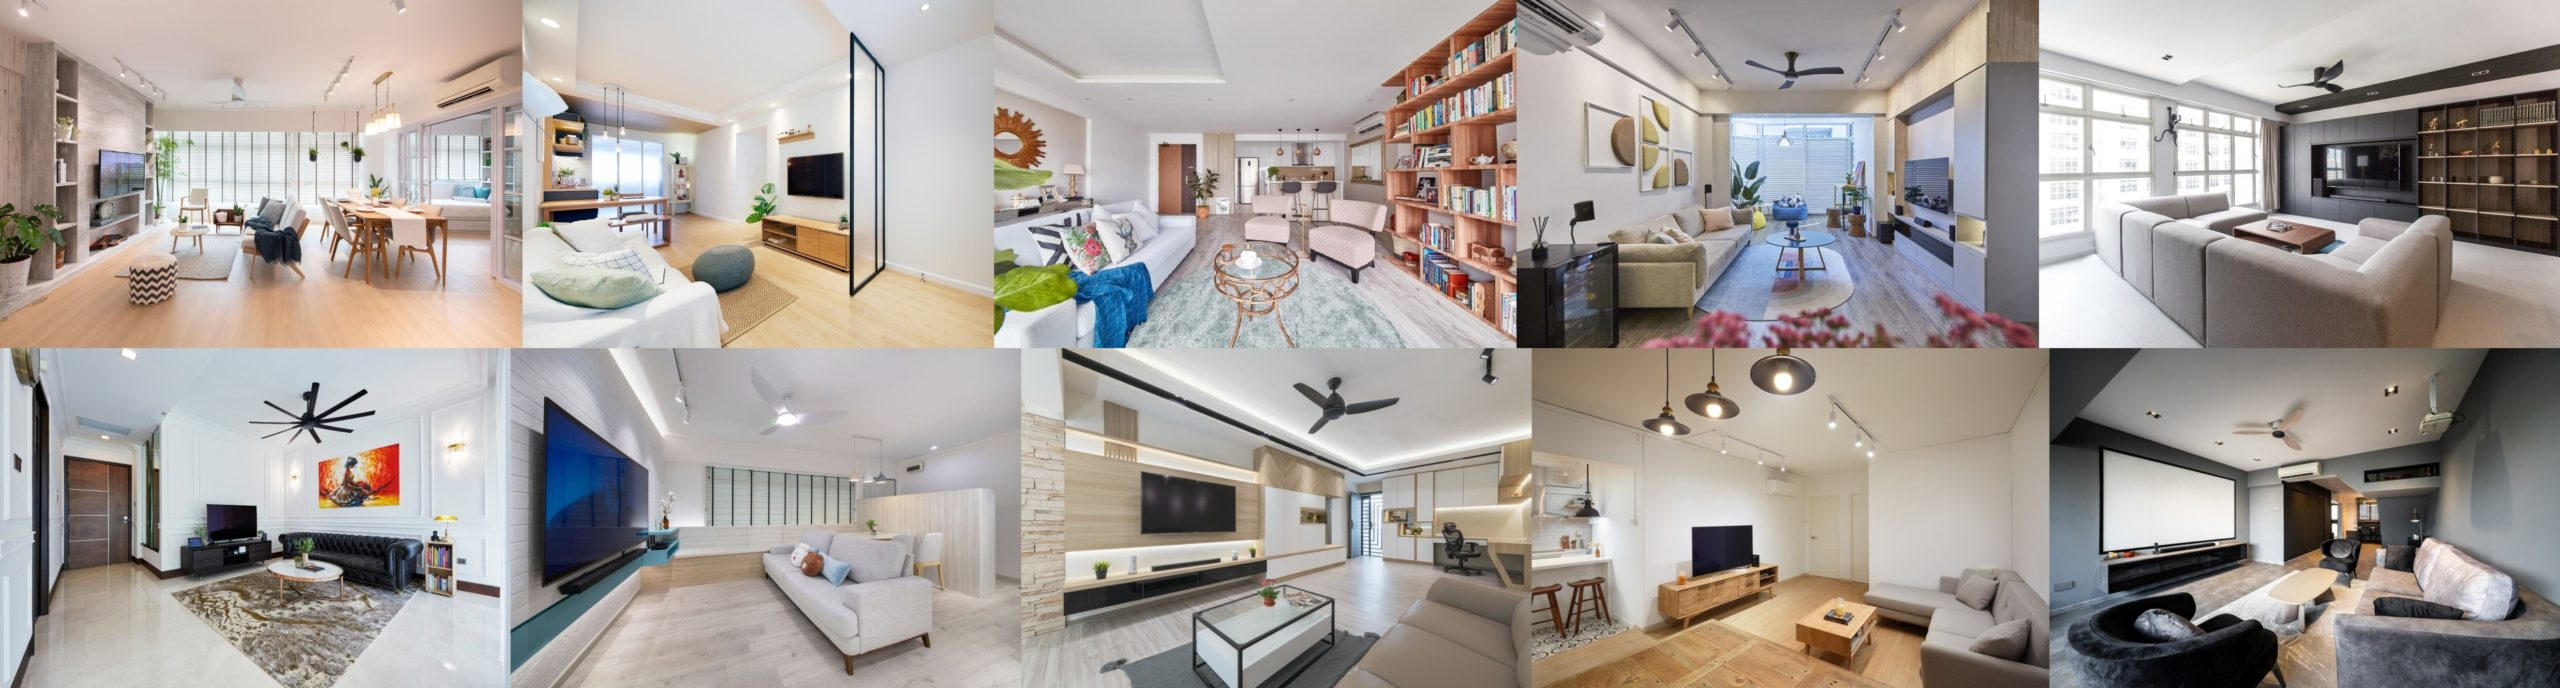 Interior Designers in Singapore are trained to take space, budgets, and the client - designer relationship into consideration.